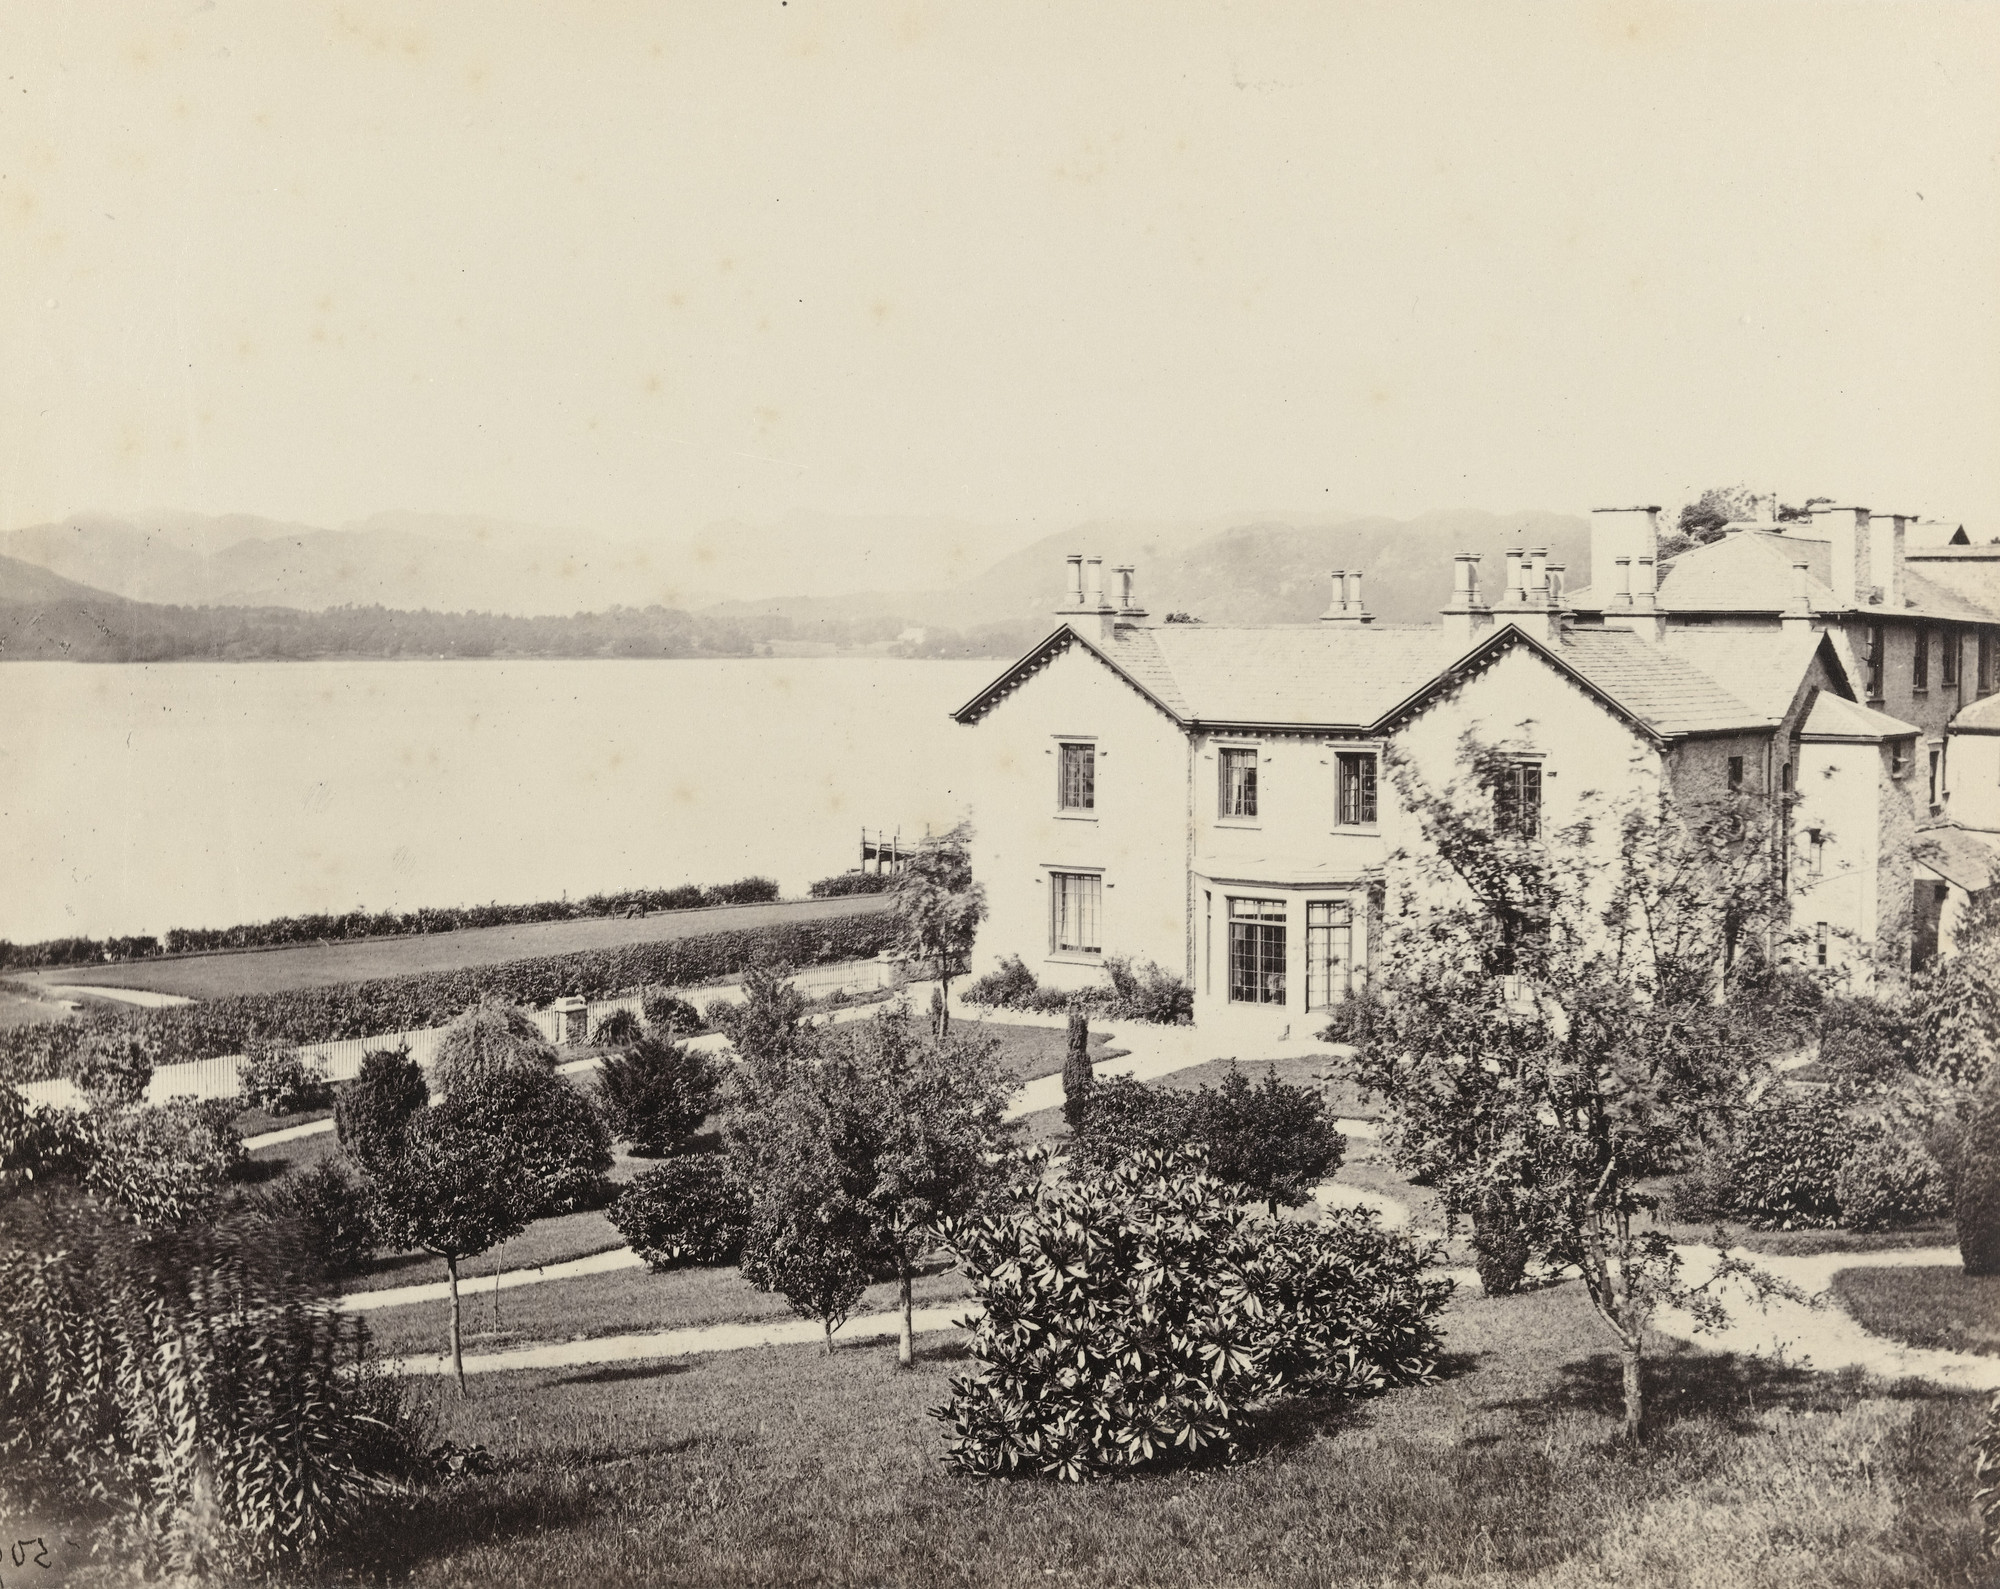 Francis Frith. Windermere, from Low-Wood Inn. c. 1860